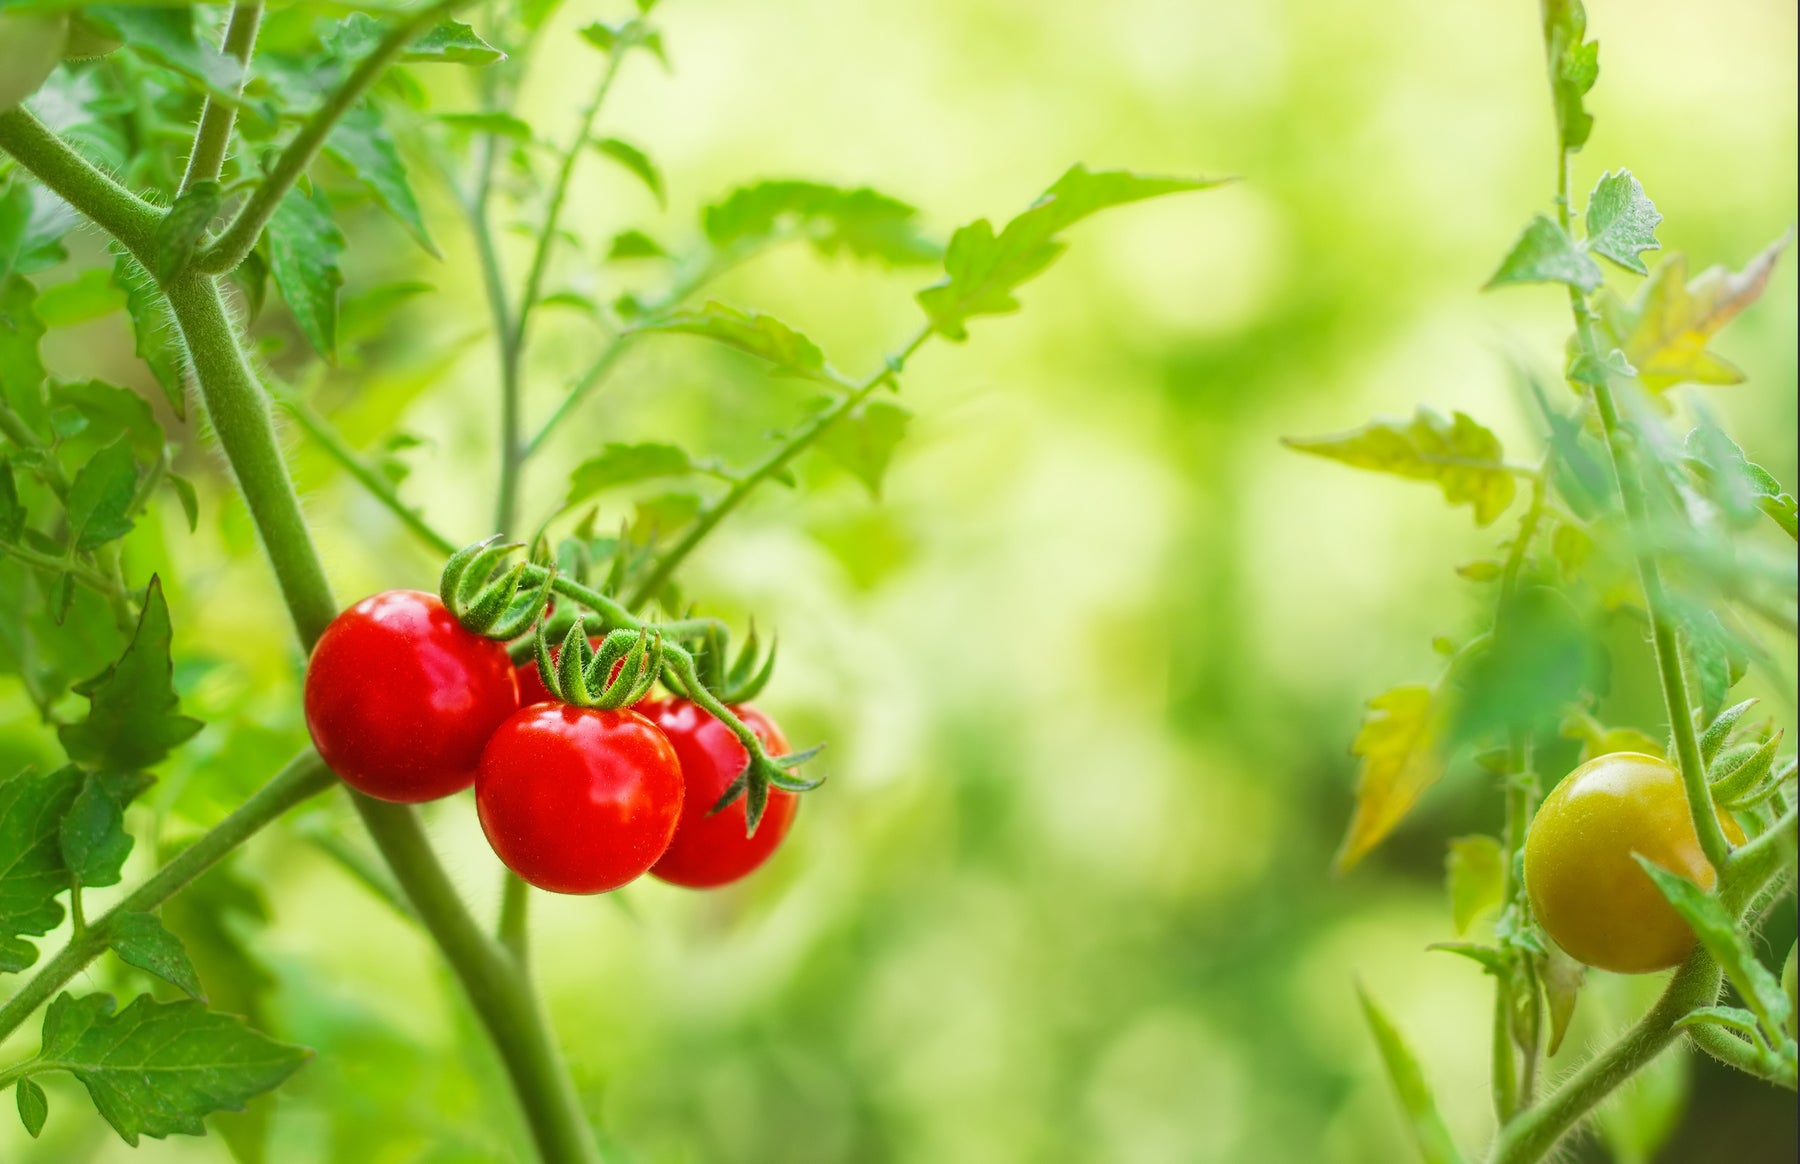 How to grow tomatoes in kitchen garden